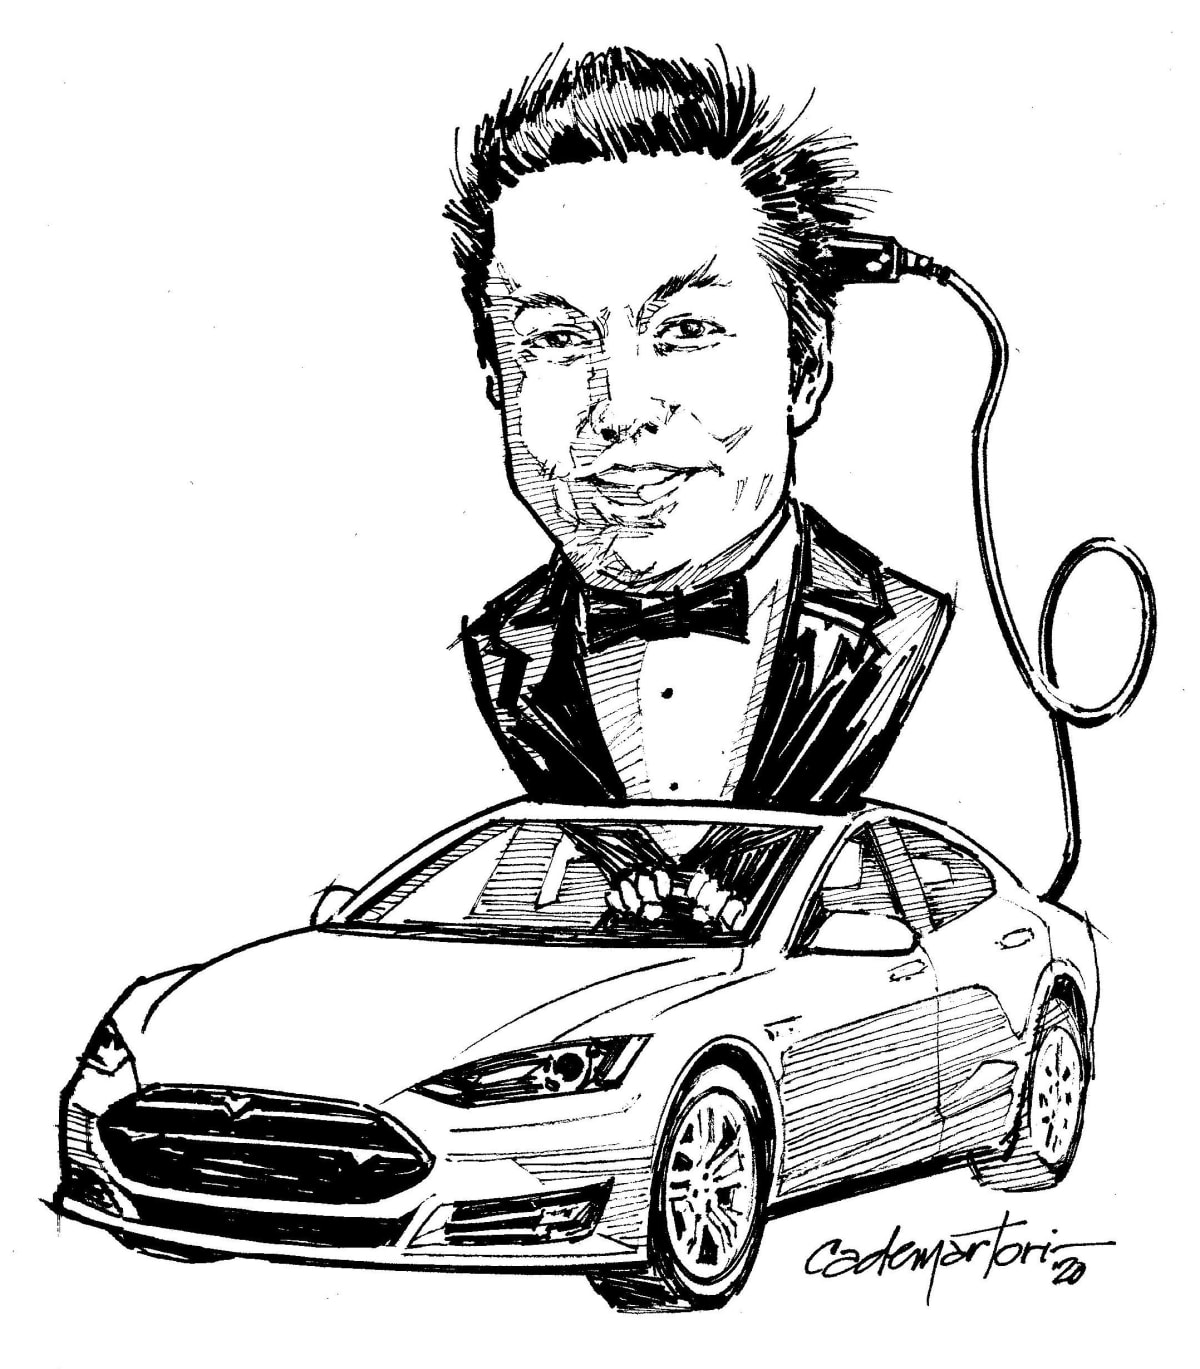 Hector's artwork featuring Elon Musk with a power cable in a Tesla Model S